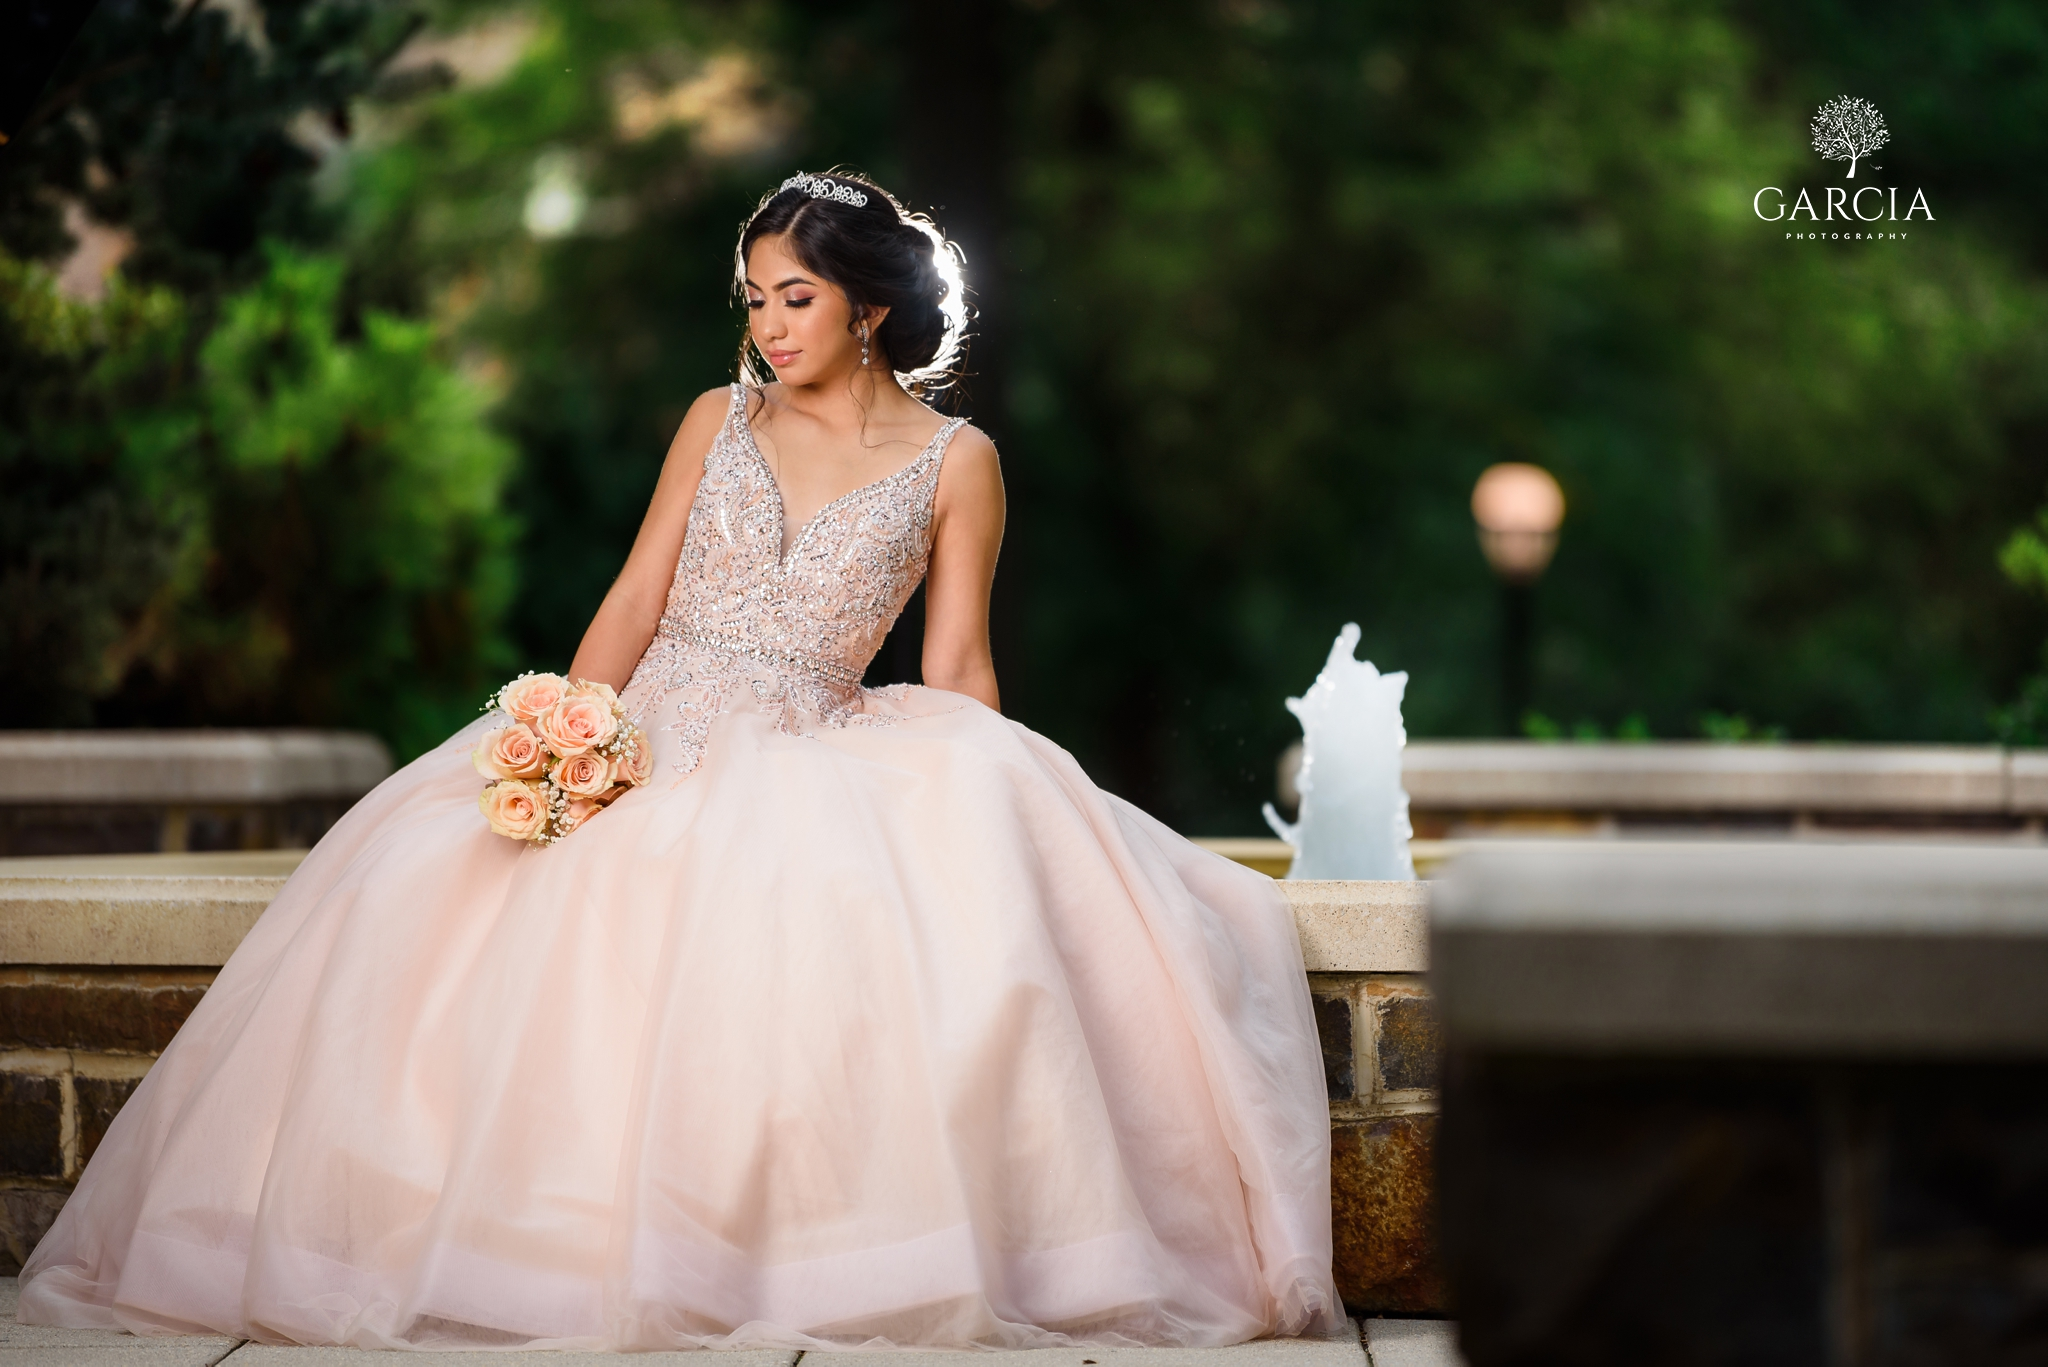 Nicole-Quince-Session-Garcia-Photography-4874.jpg